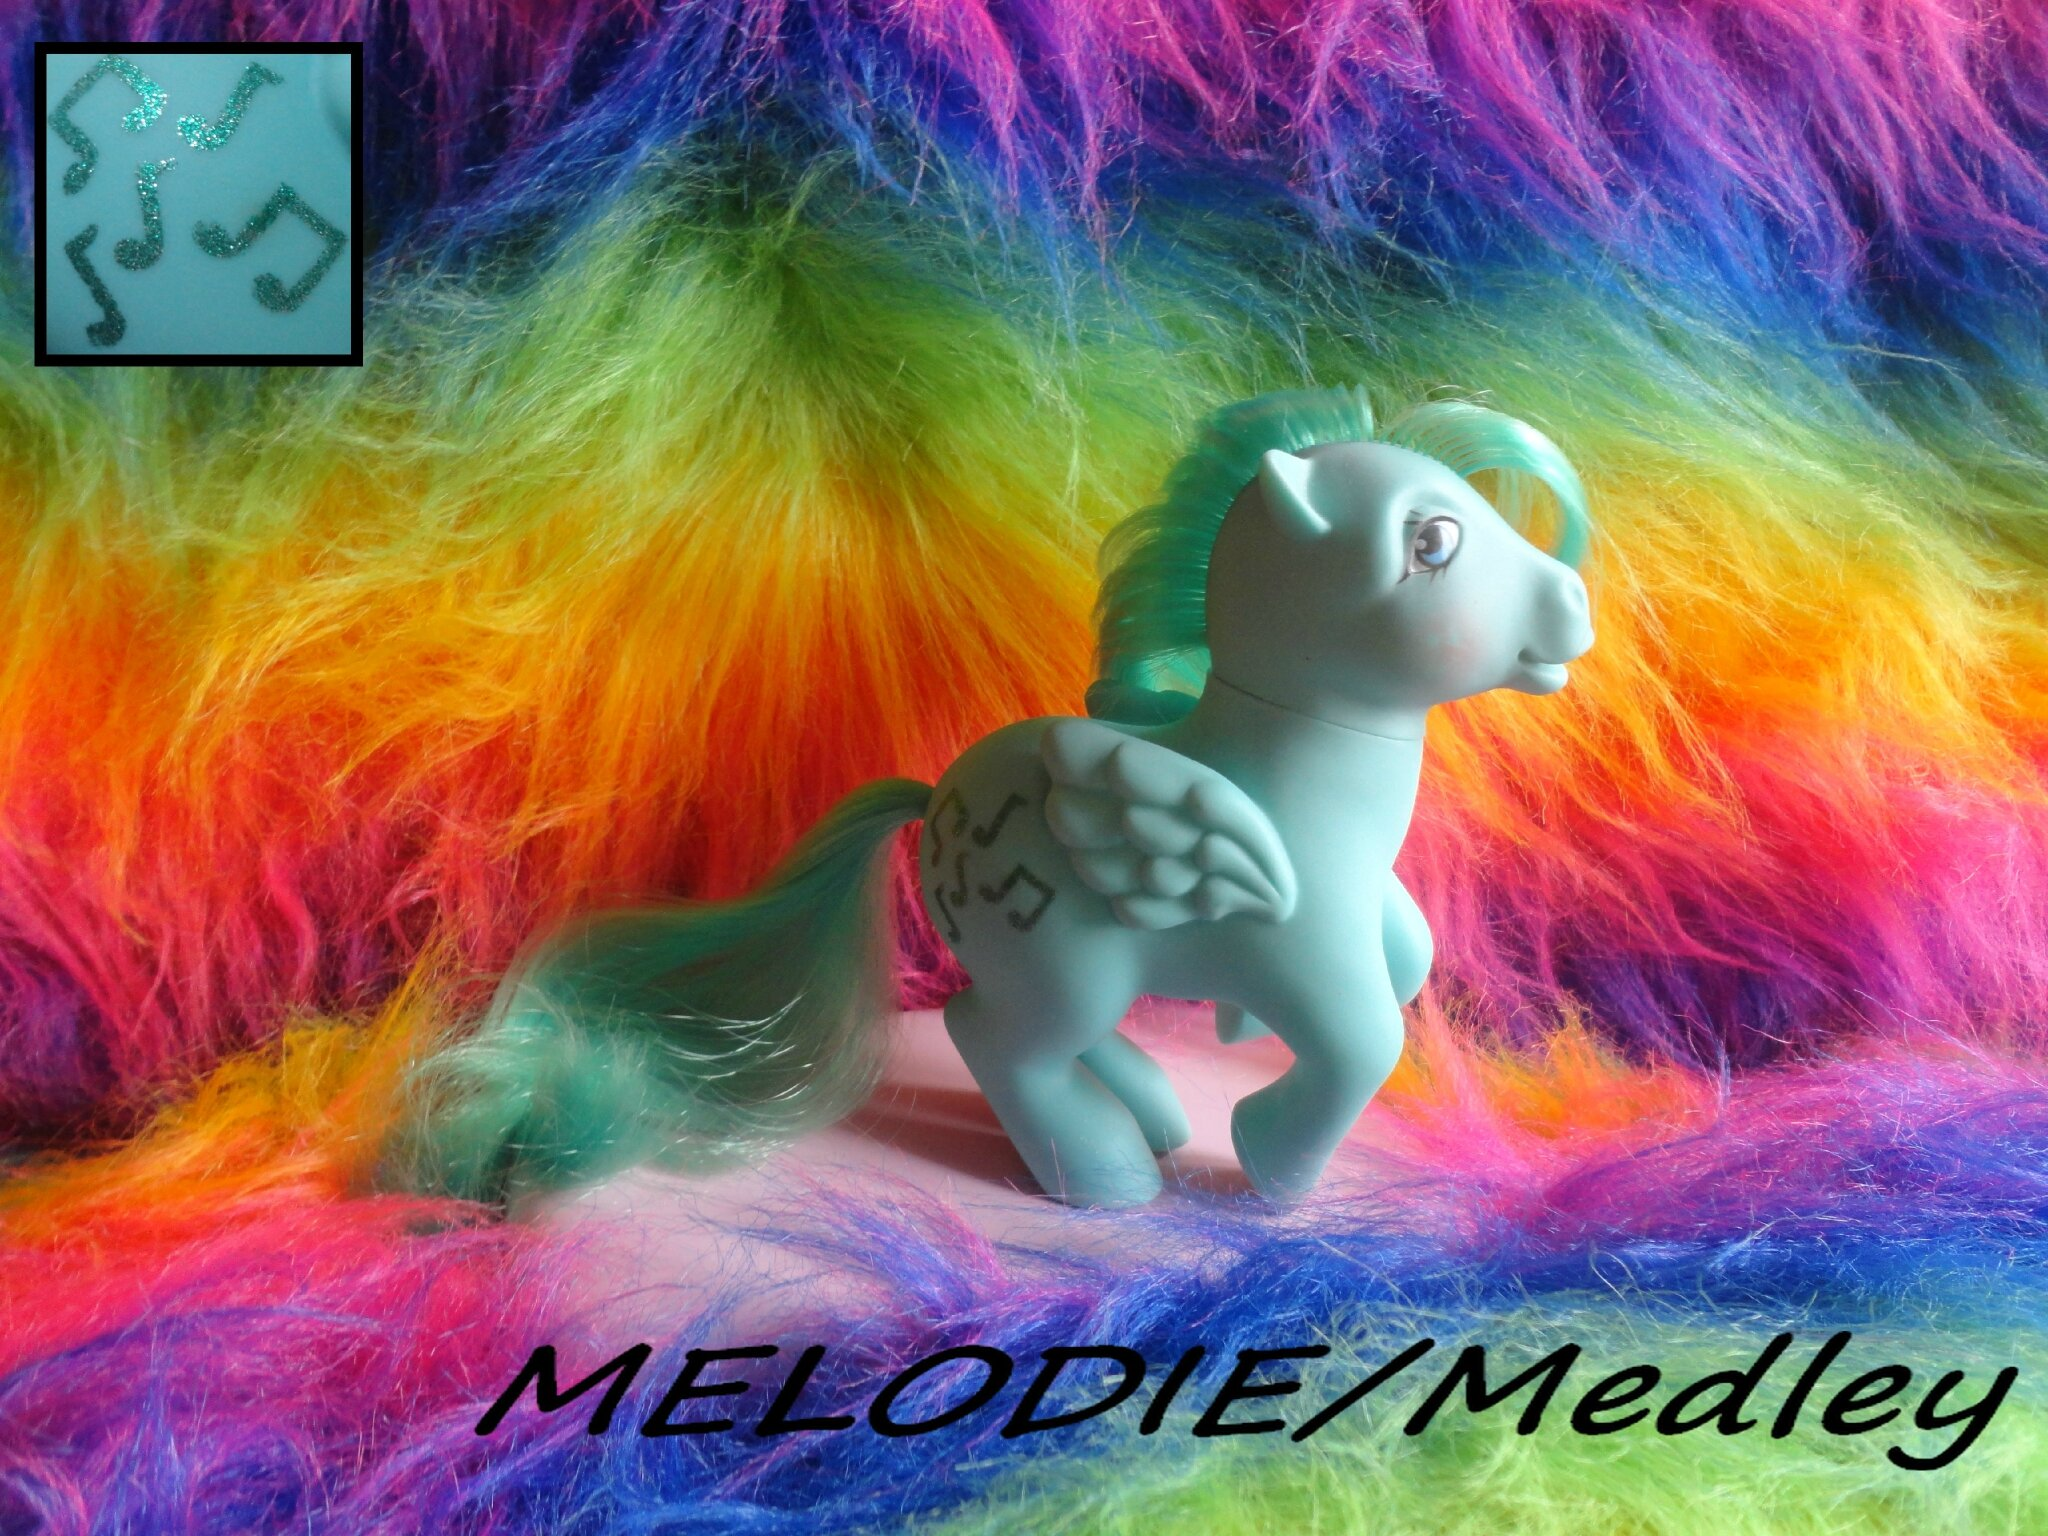 MELODIE (Medley)